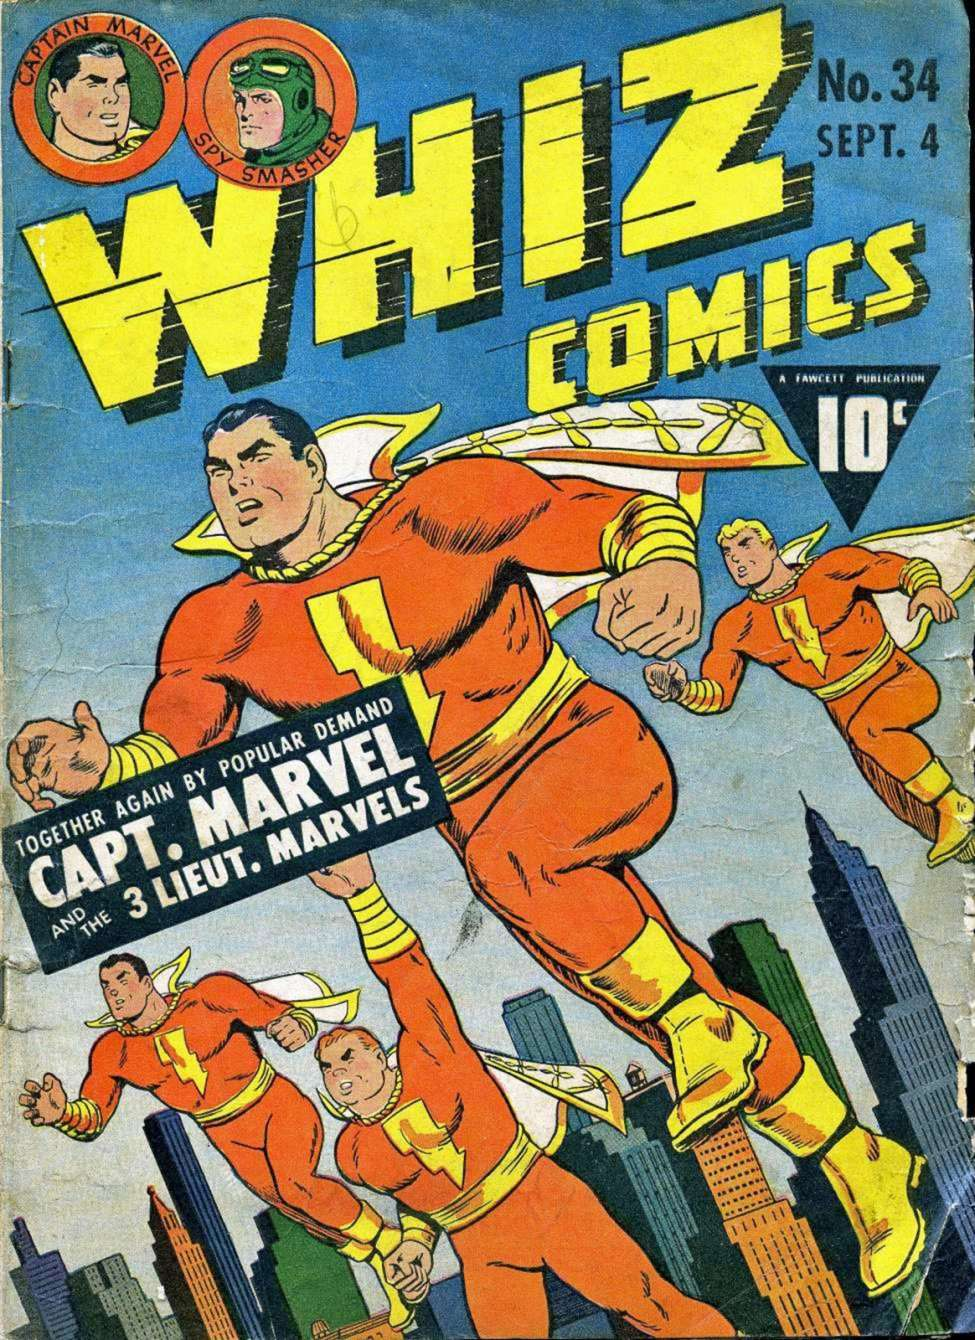 Comic Book Cover For Capt. Marvel Whiz Archives Vol 08